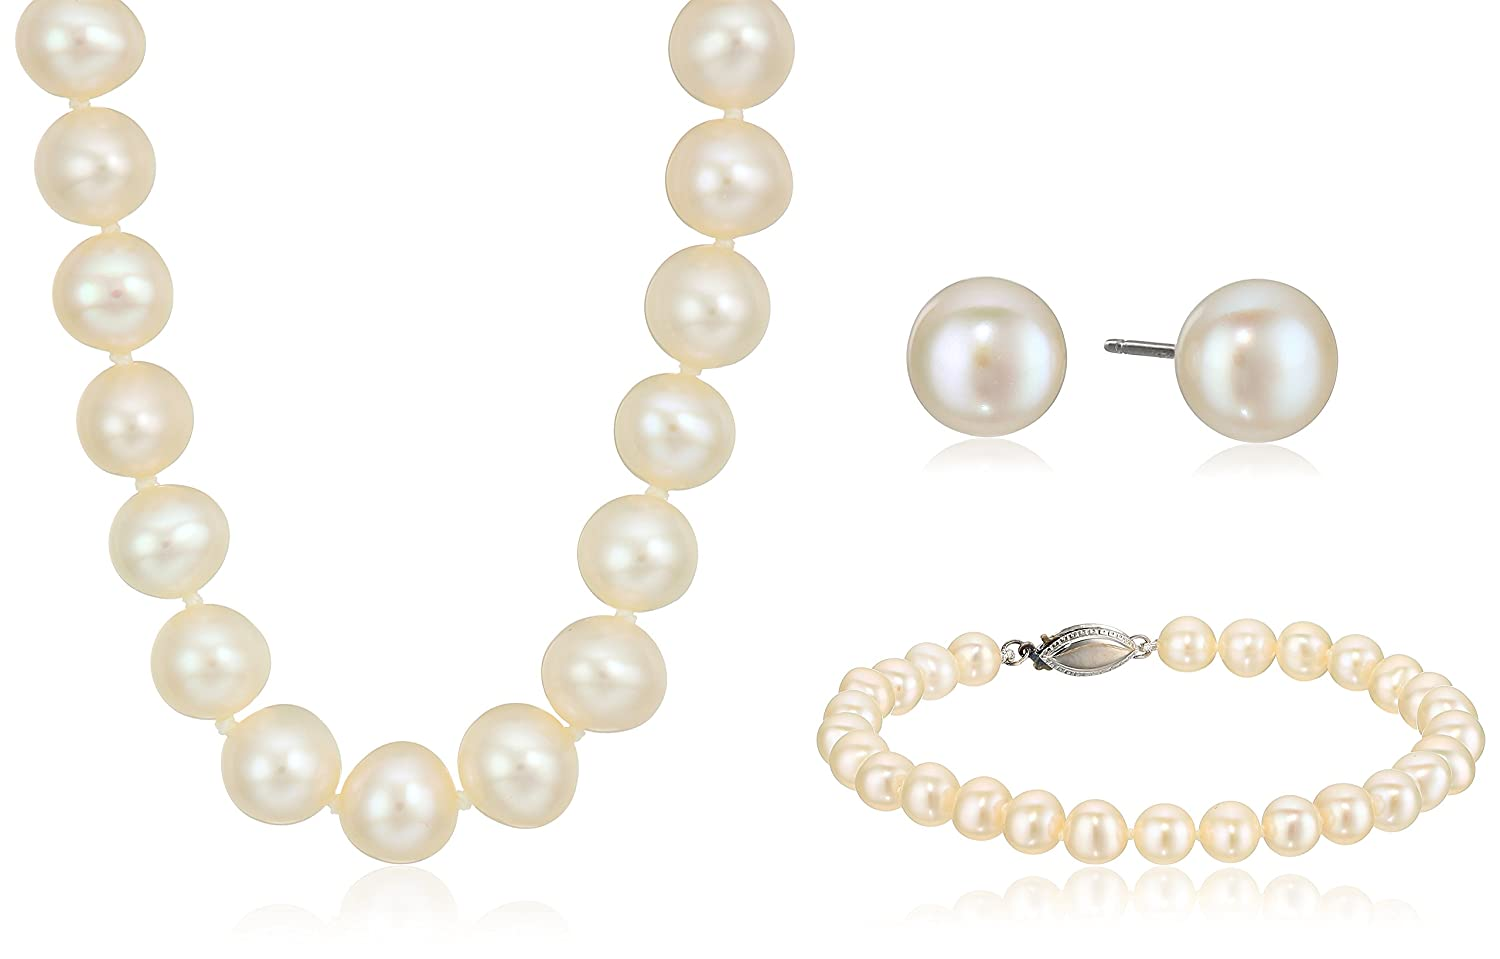 Sterling Silver White 6-7mm Freshwater Cultured Pearl Necklace, Bracelet and Earrings Set Amazon Collection QSET-10438-AM